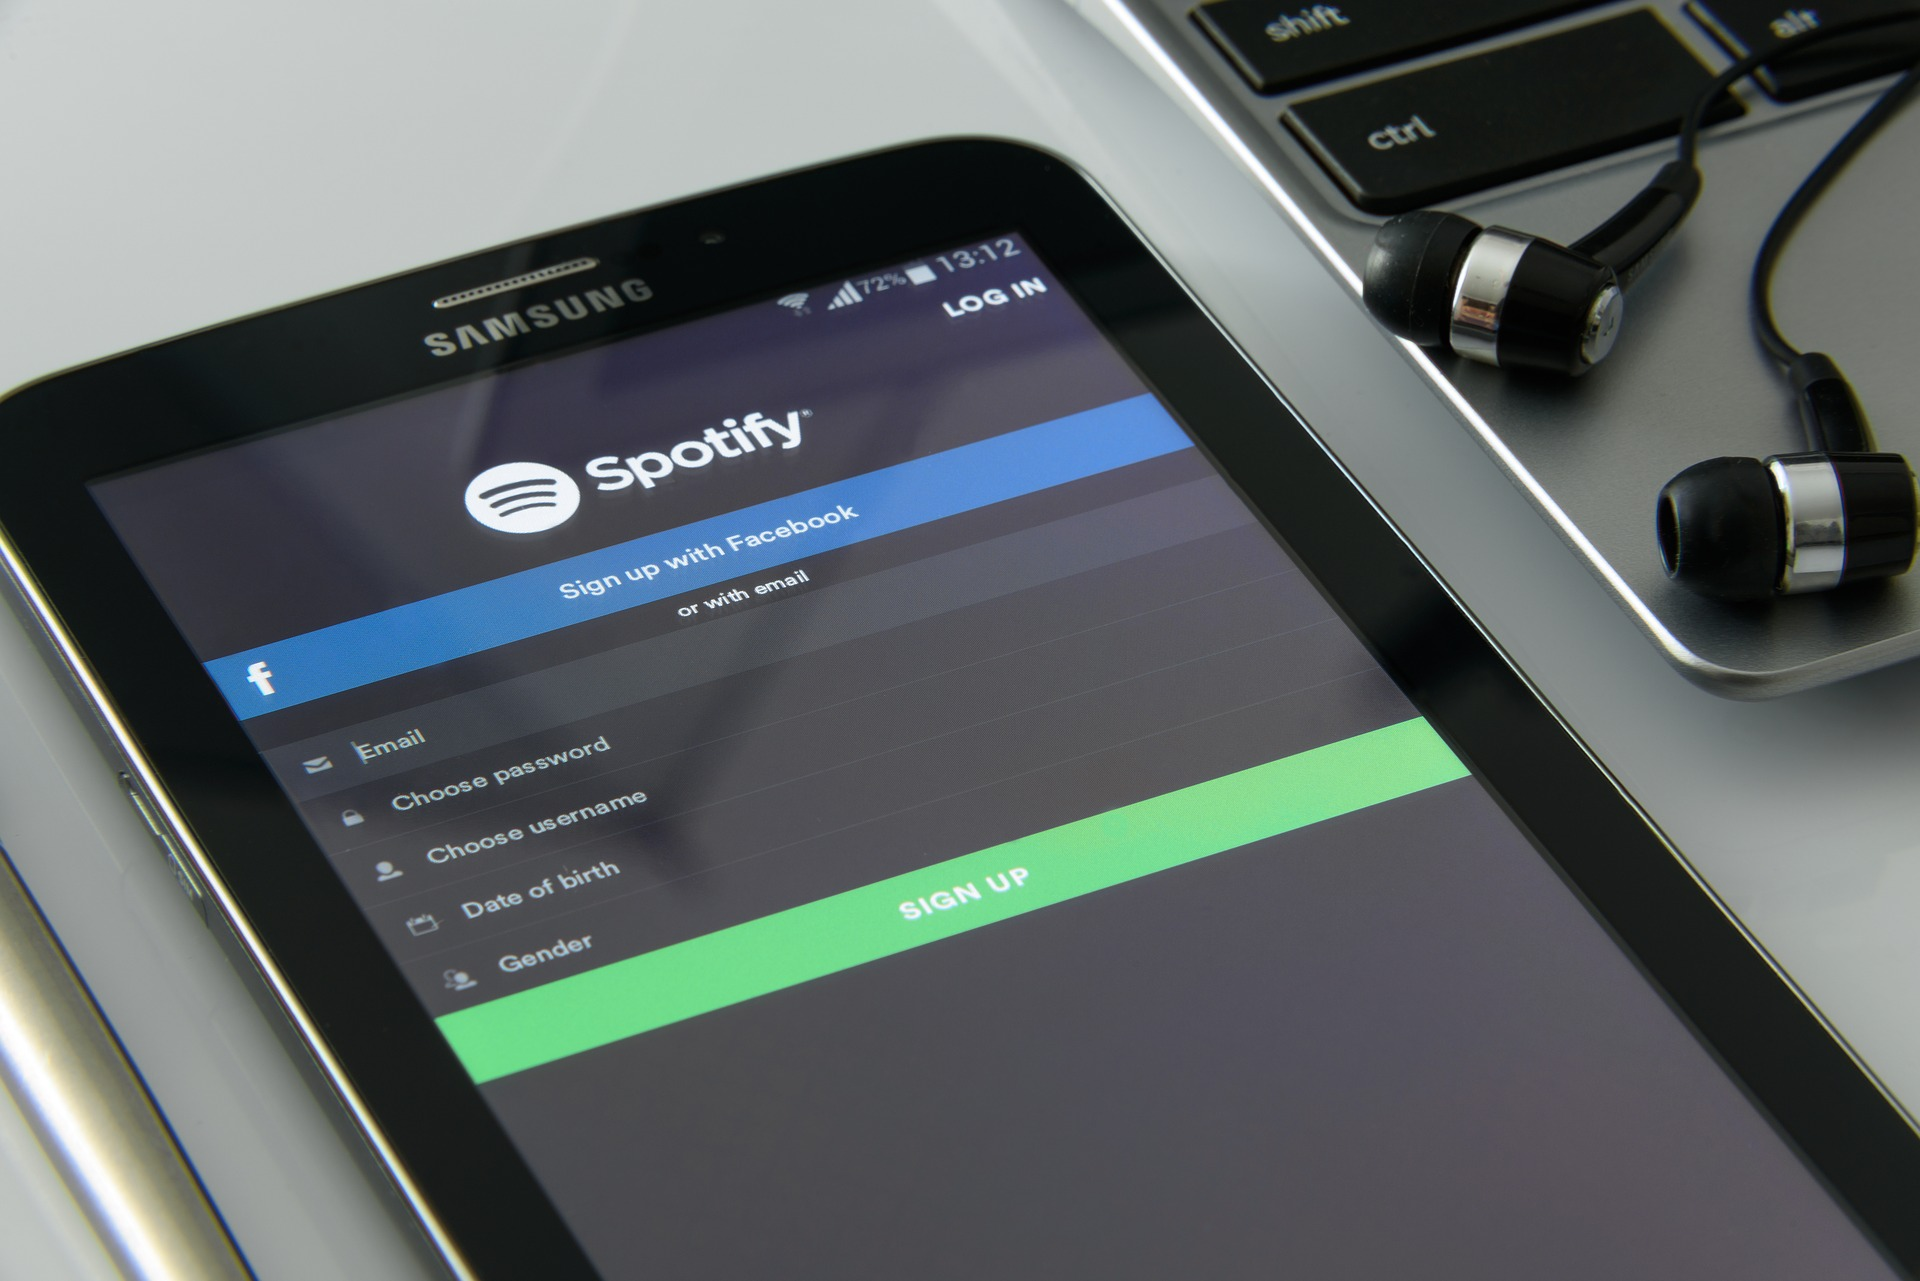 How to download music online?